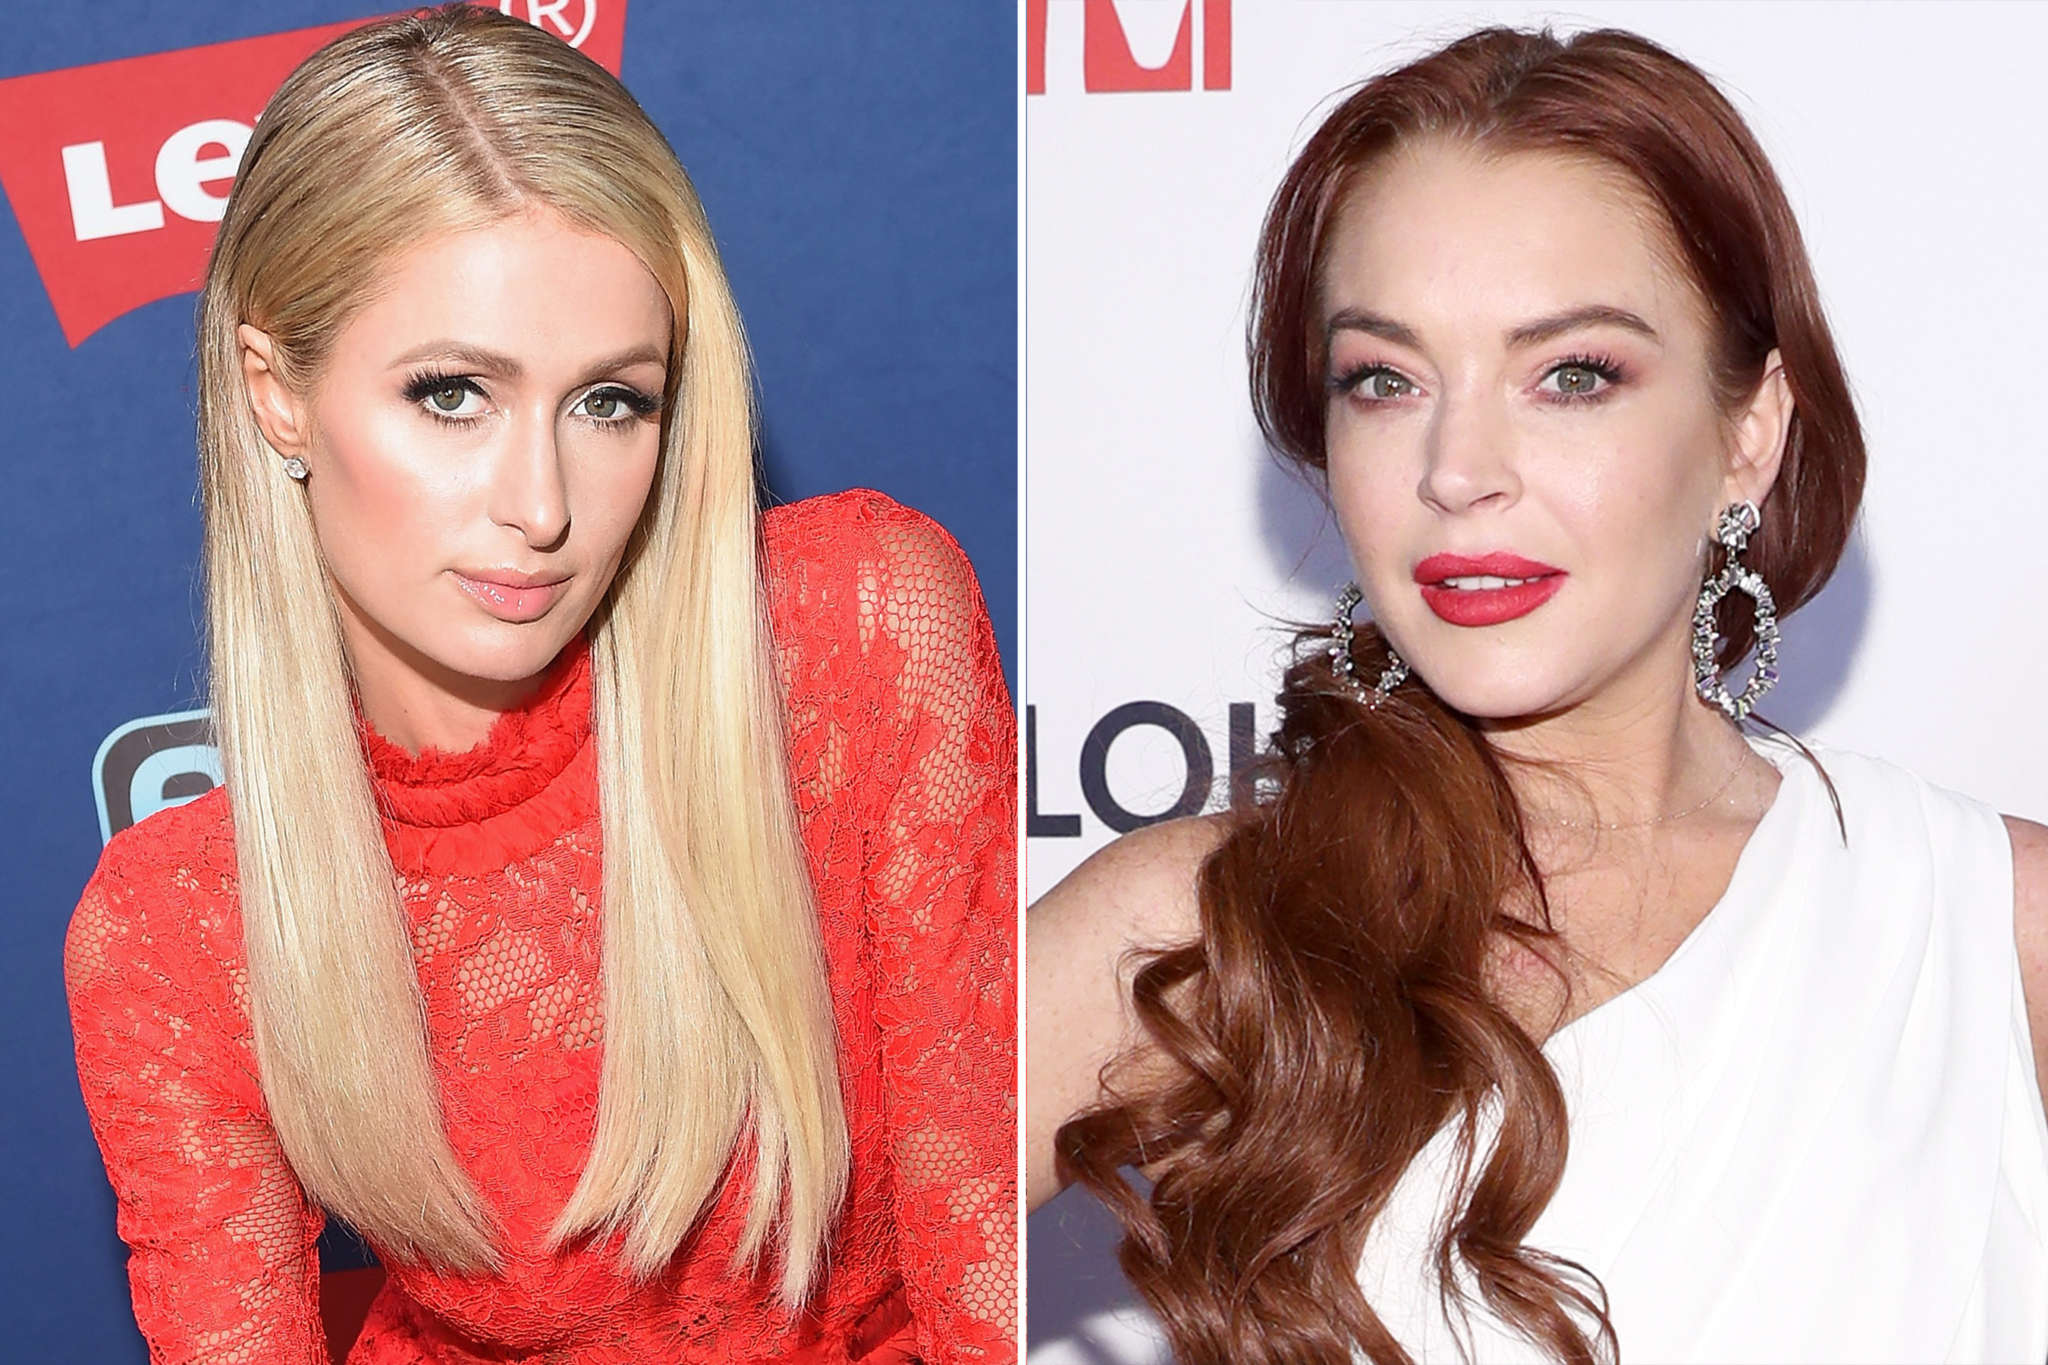 lindsay-lohan-addresses-the-speculations-she-and-paris-hilton-are-beefing-again